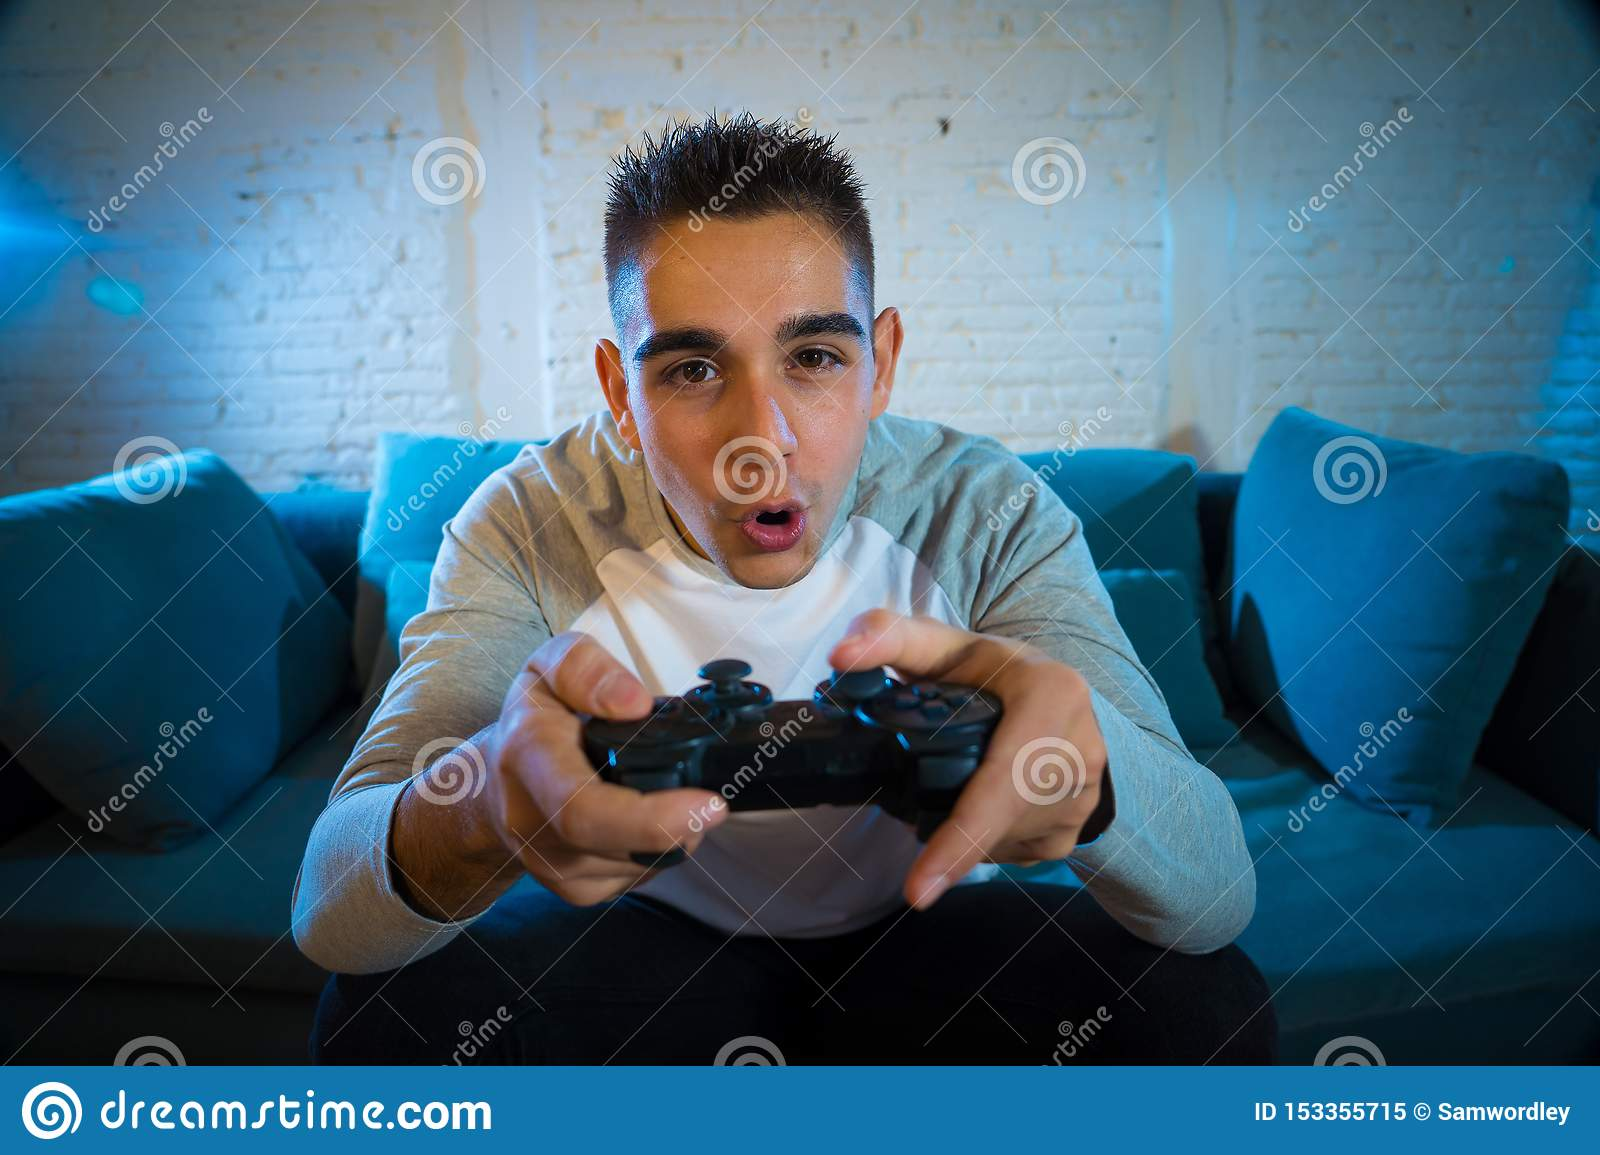 Close Up Portrait Of Young Addicted Man Playing Video Game At Night In Gaming And Addiction Concept Stock Image Image Of Couch Online 153355715